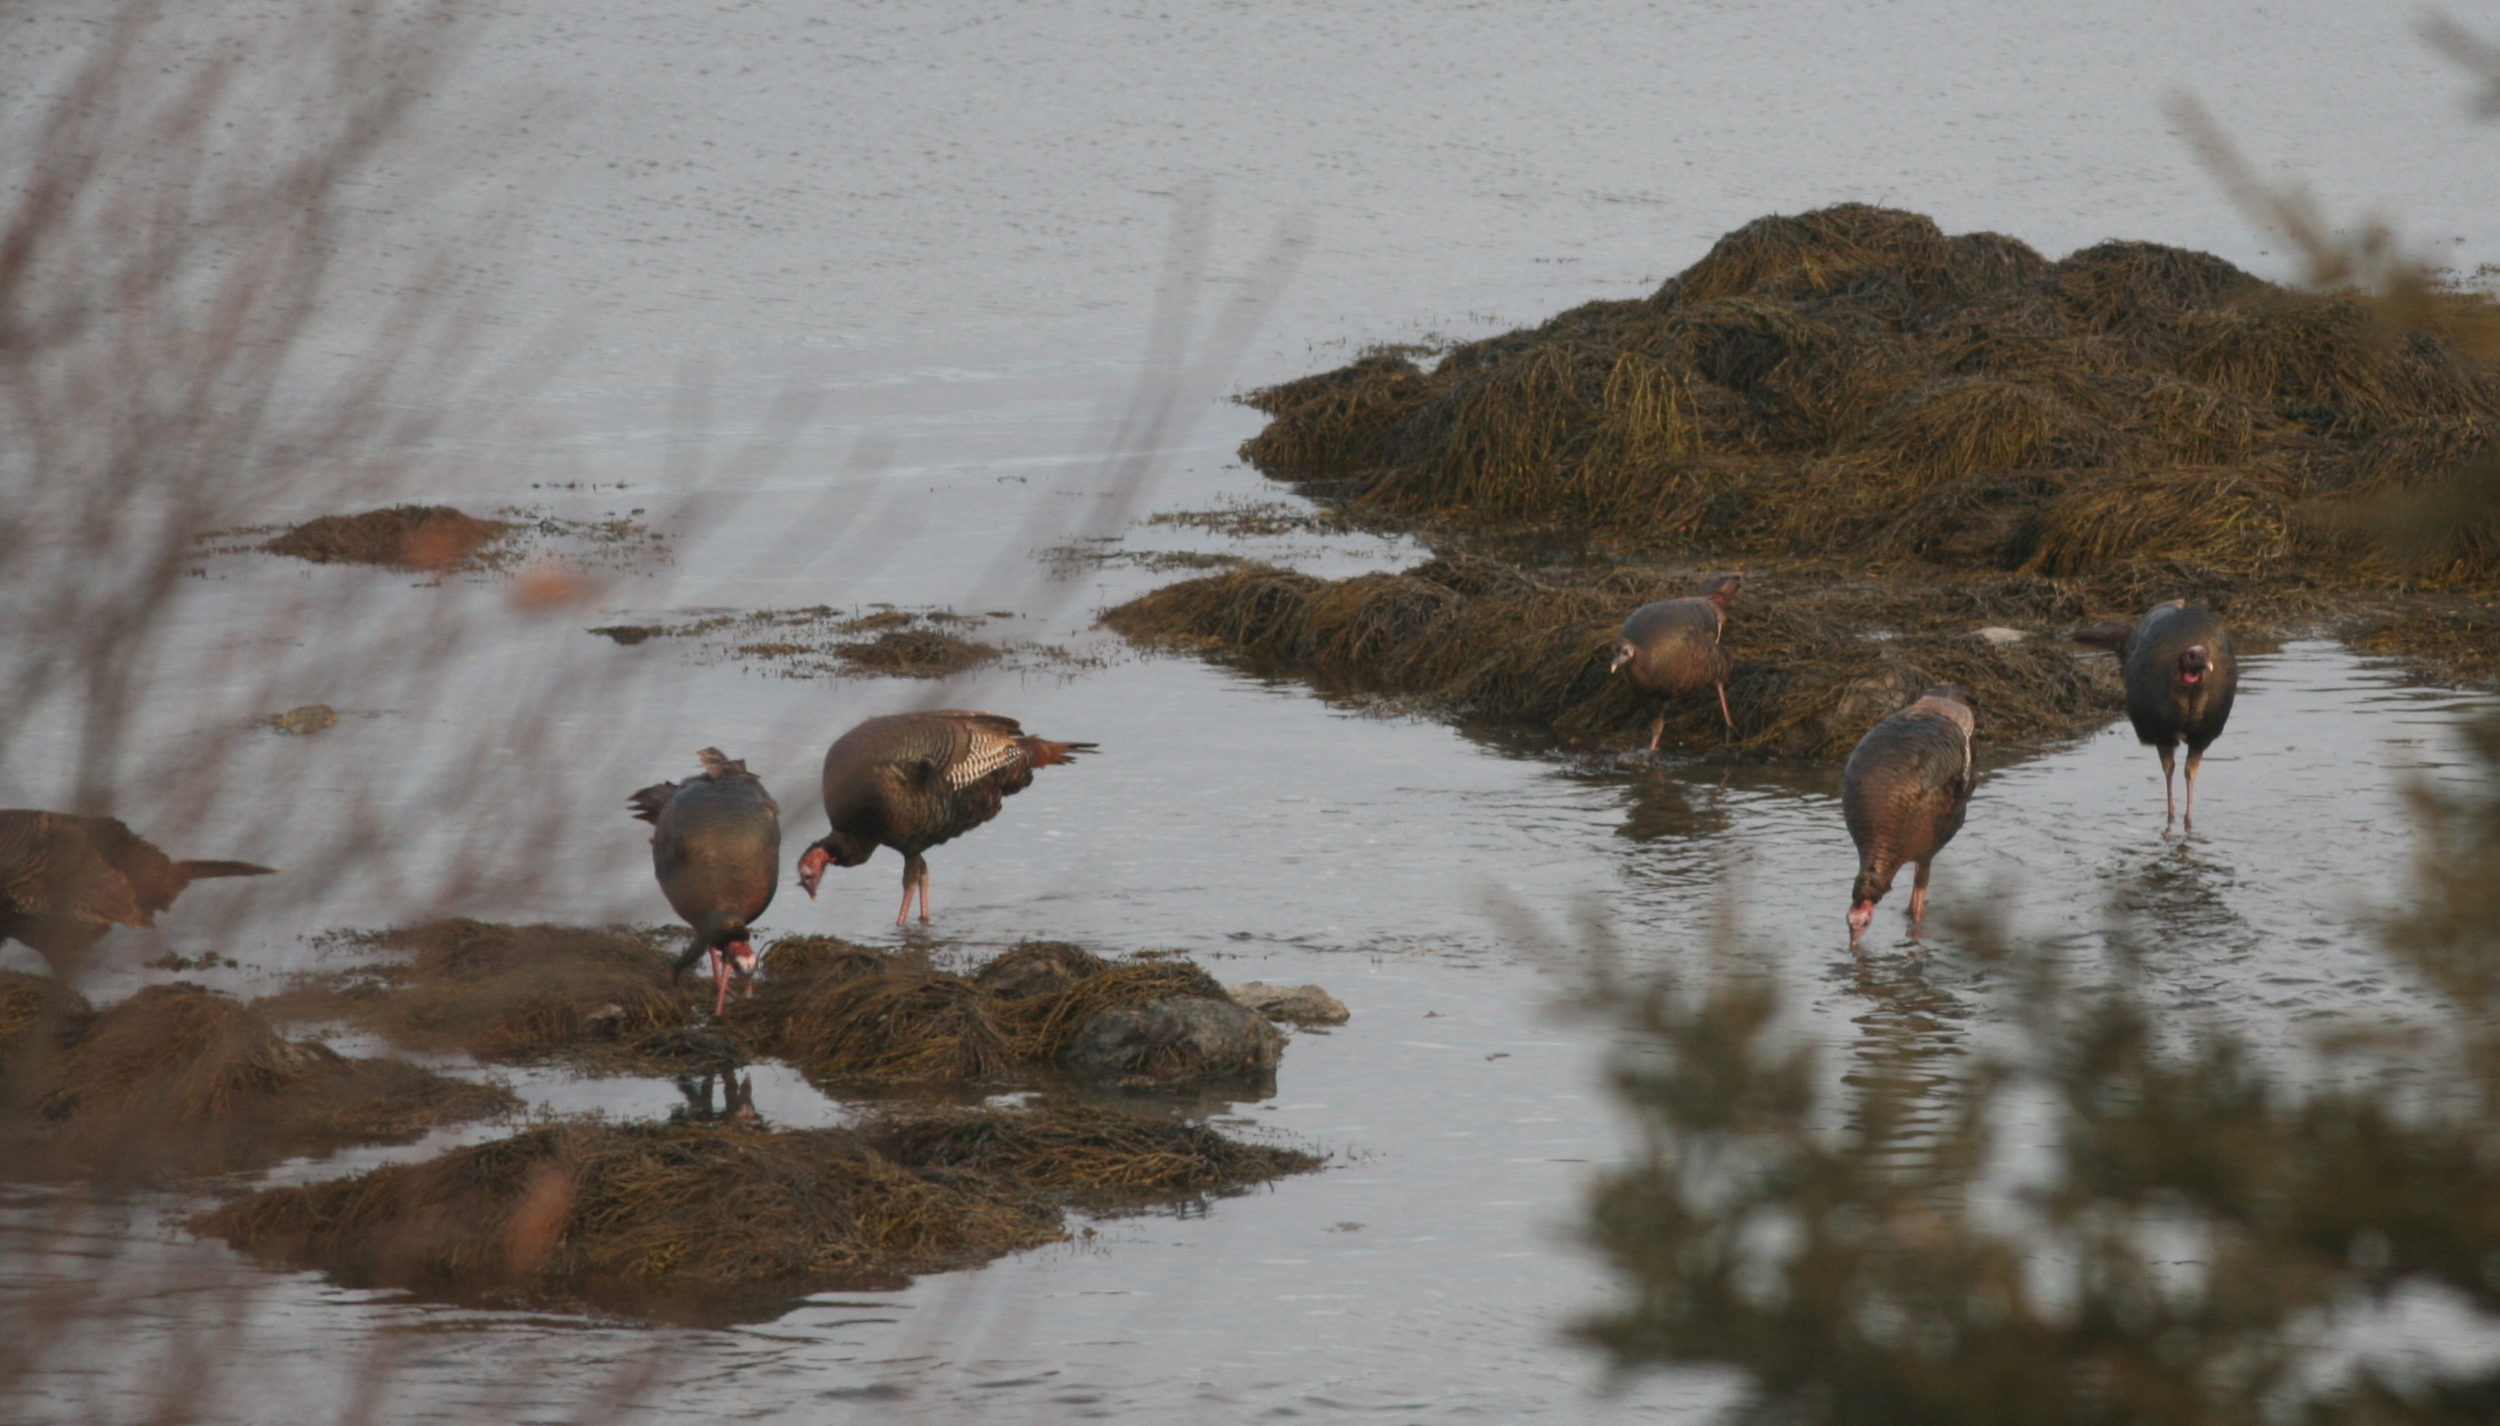 Clearly not chicken, these self-brining wild turkeys went wading into the frigid Maine water at low tide.